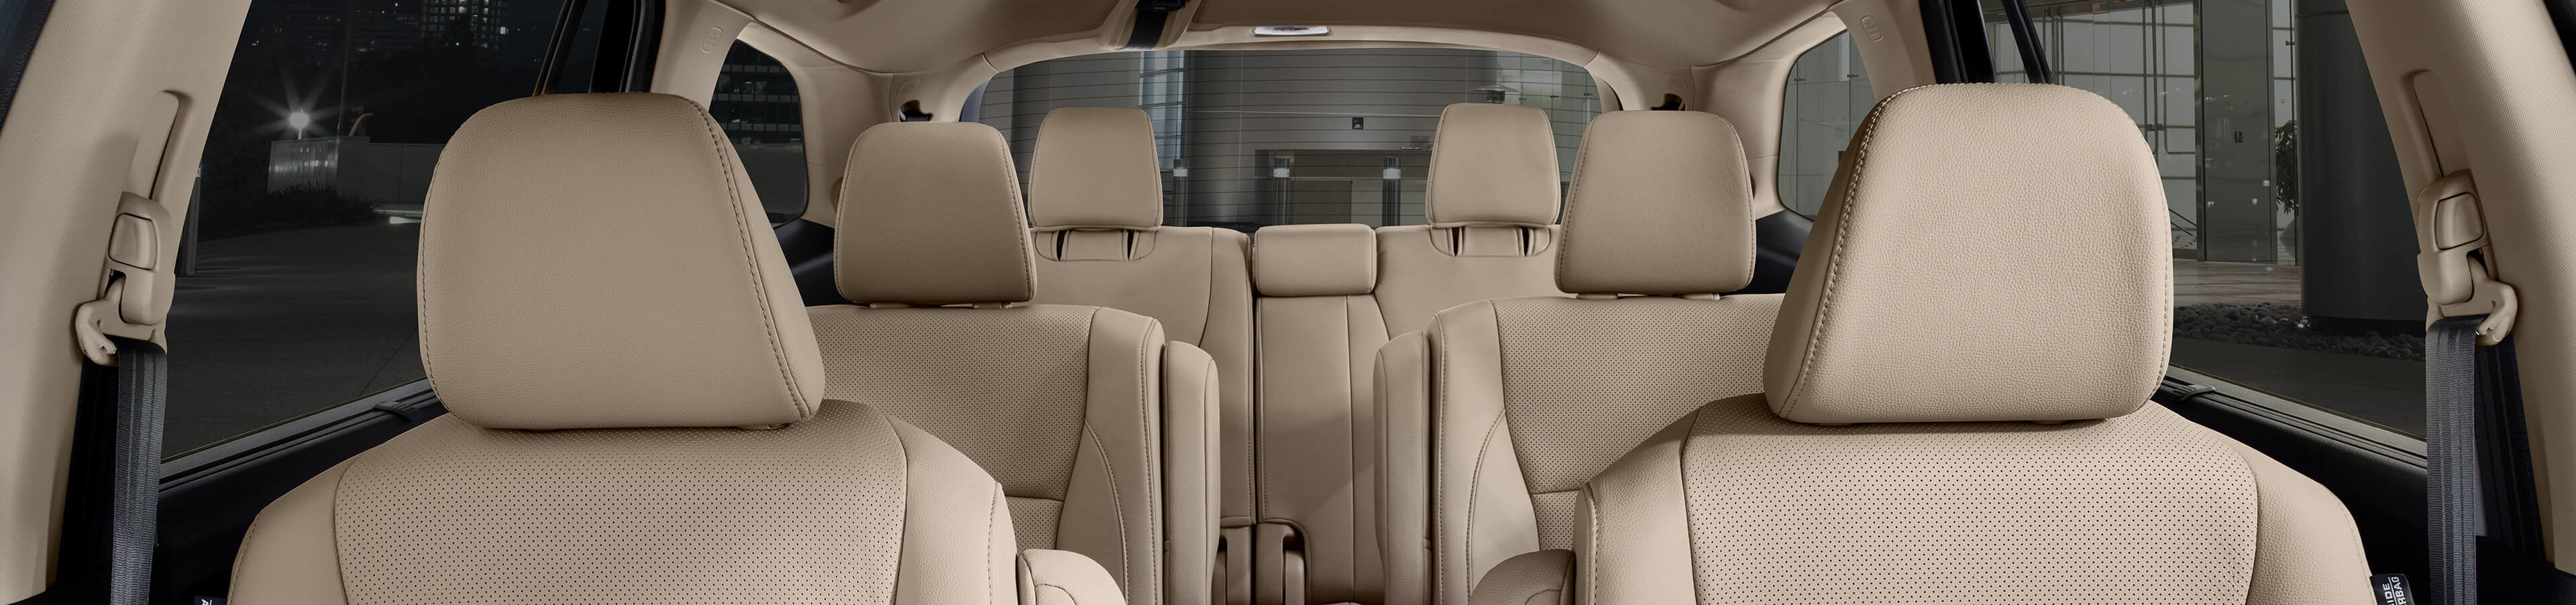 interior seating shot of Honda pilot showcasing 3 rows and 7 seats